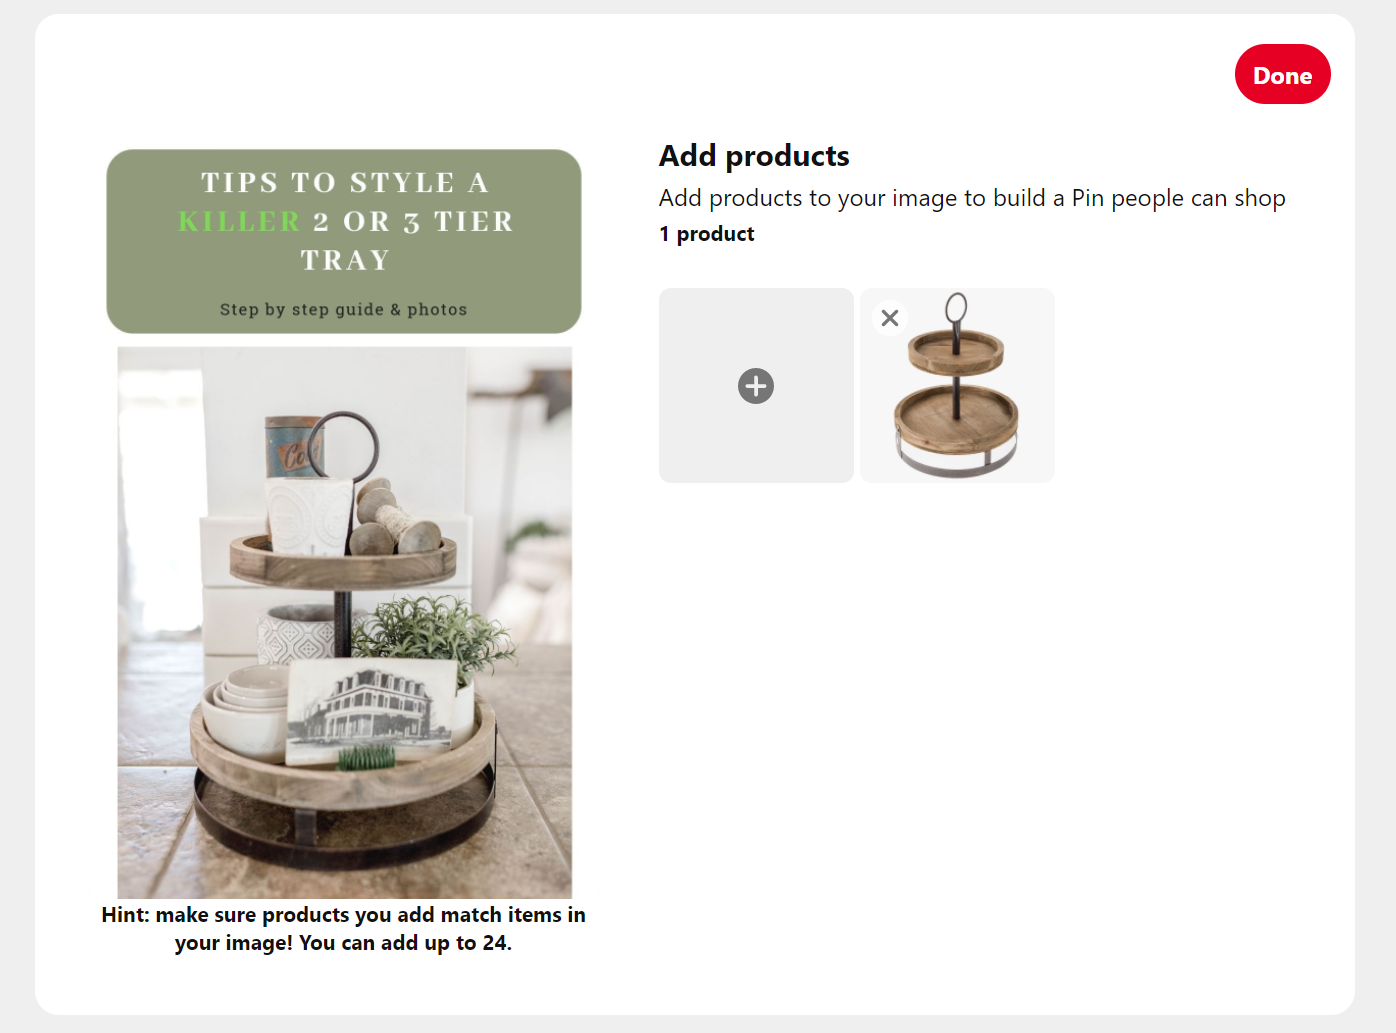 tag product url photo - How to Tag Products on Pinterest with Clickable URLs - Collection Pins